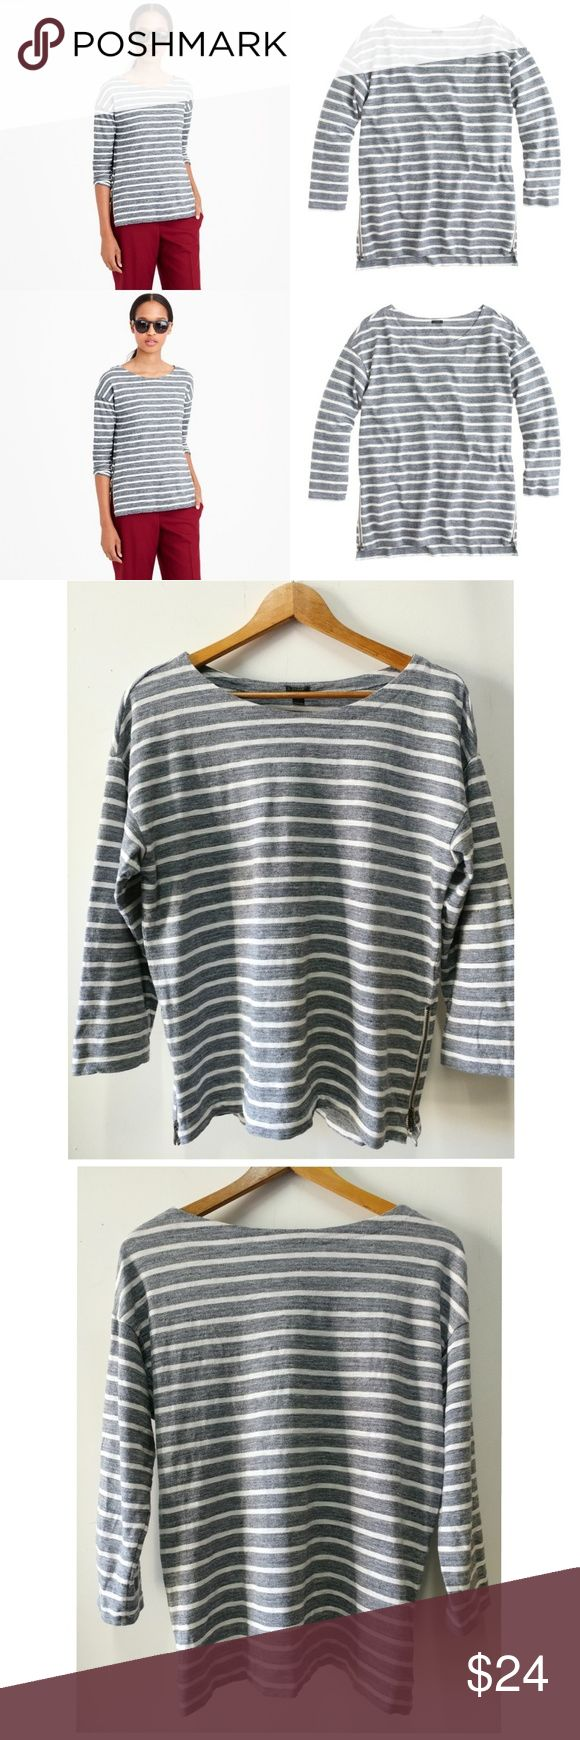 "J Crew T Shirt Side Zip Stripe T-Shirt B1468 J Crew Side Zip Stripe T-Shirt B1468 Size Medium Approximate Measurements Chest 40"" Length 26"" J. Crew Tops Blouses"